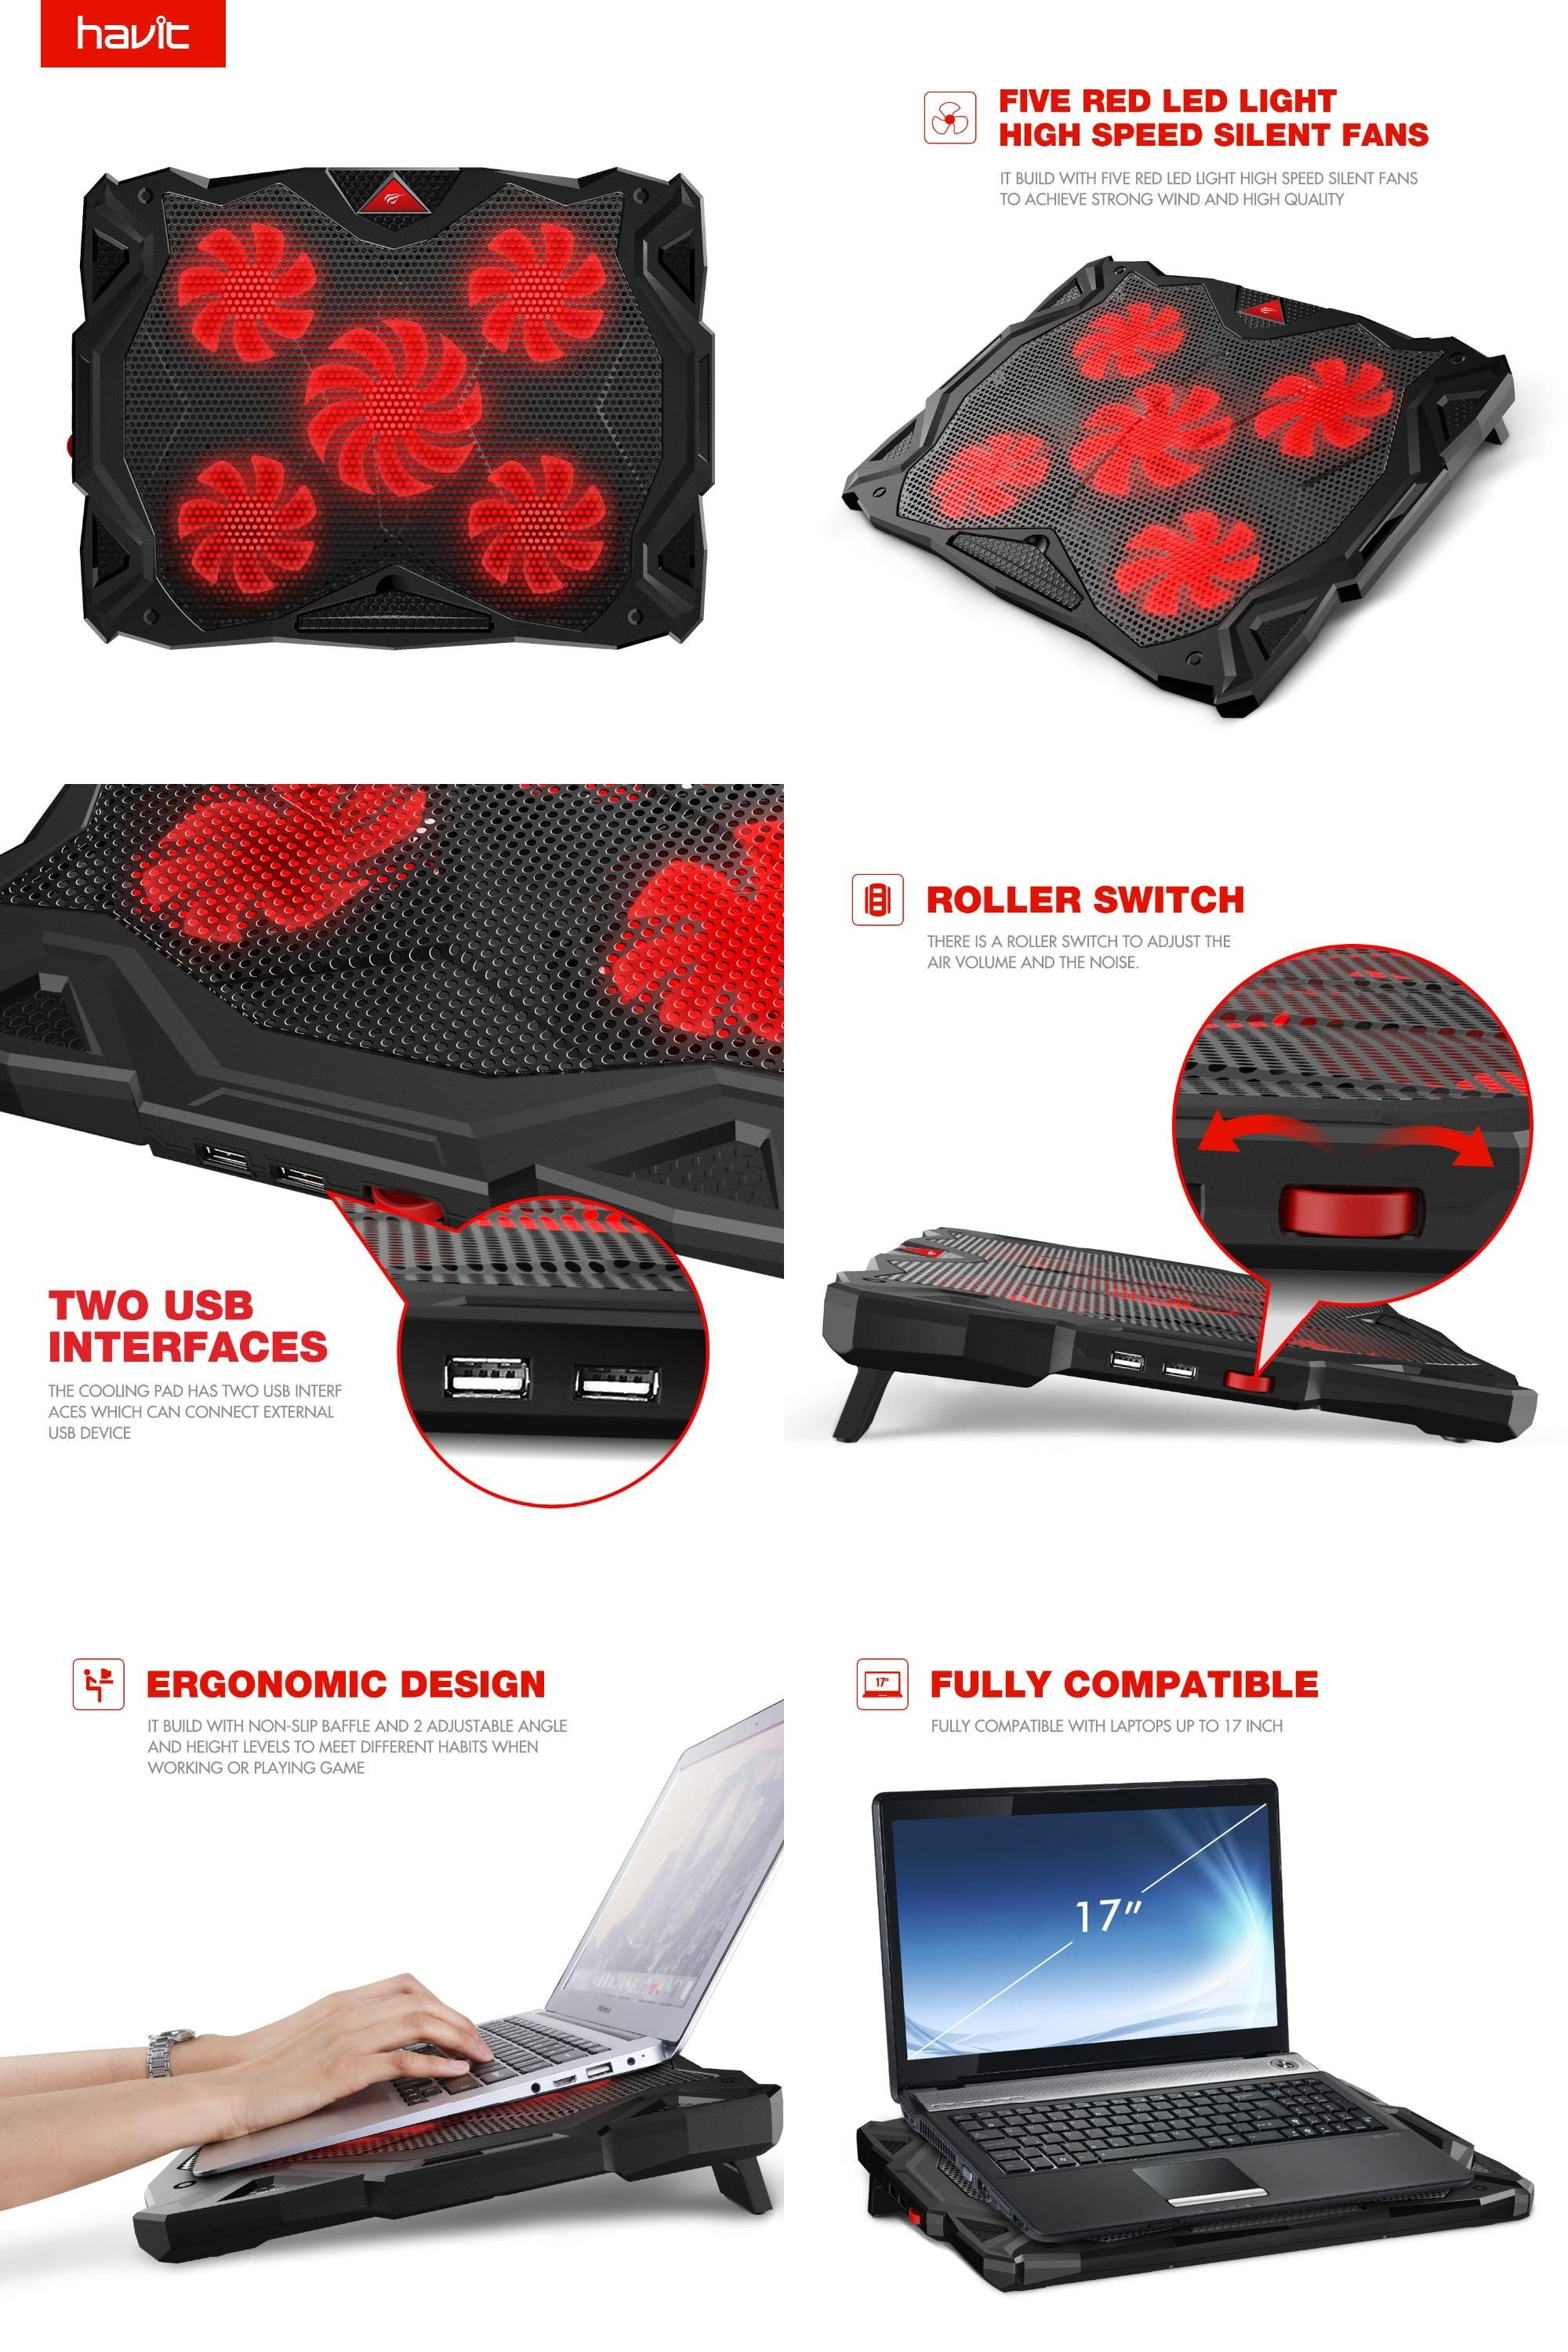 Game coolers portable -  Visit To Buy Havit 5 Quiet Fans Red Led Laptop Cooler Noise Free